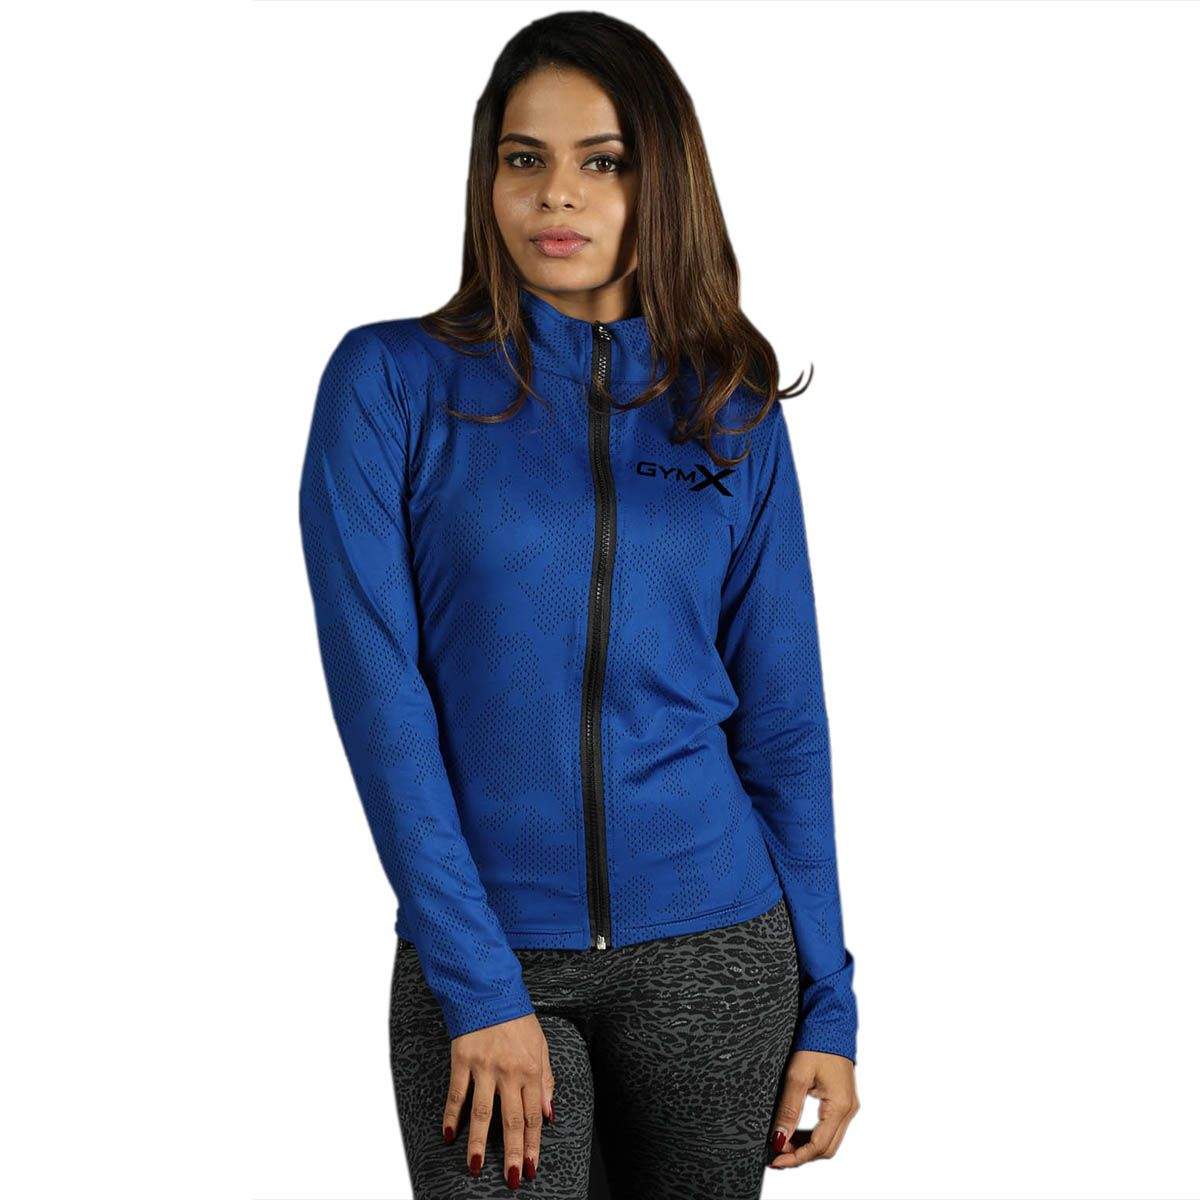 GymX Womens Royal Blue Full Zip Jacket- Athena Series(Size:XX-Large)